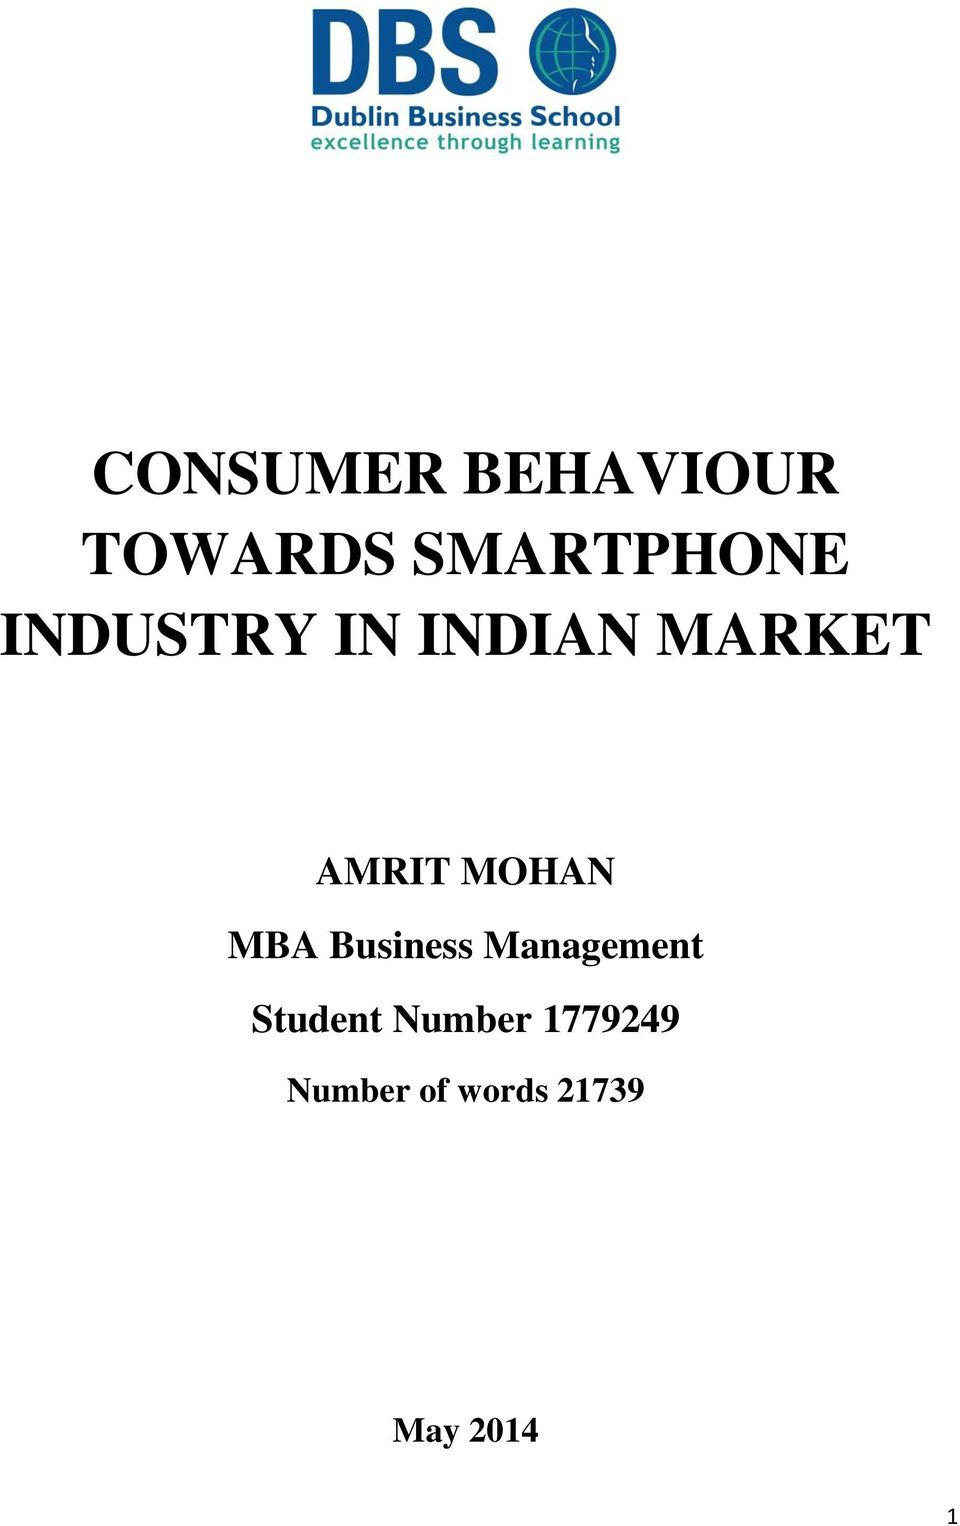 consumer behaviour in packagedfood industry The evolution in consumer behaviors is playing out largely as we predicted  of  india's fast-growing consumer market: rising affluence, the country's  care,  local flavors in packaged food, and hand-woven fabrics in clothing.